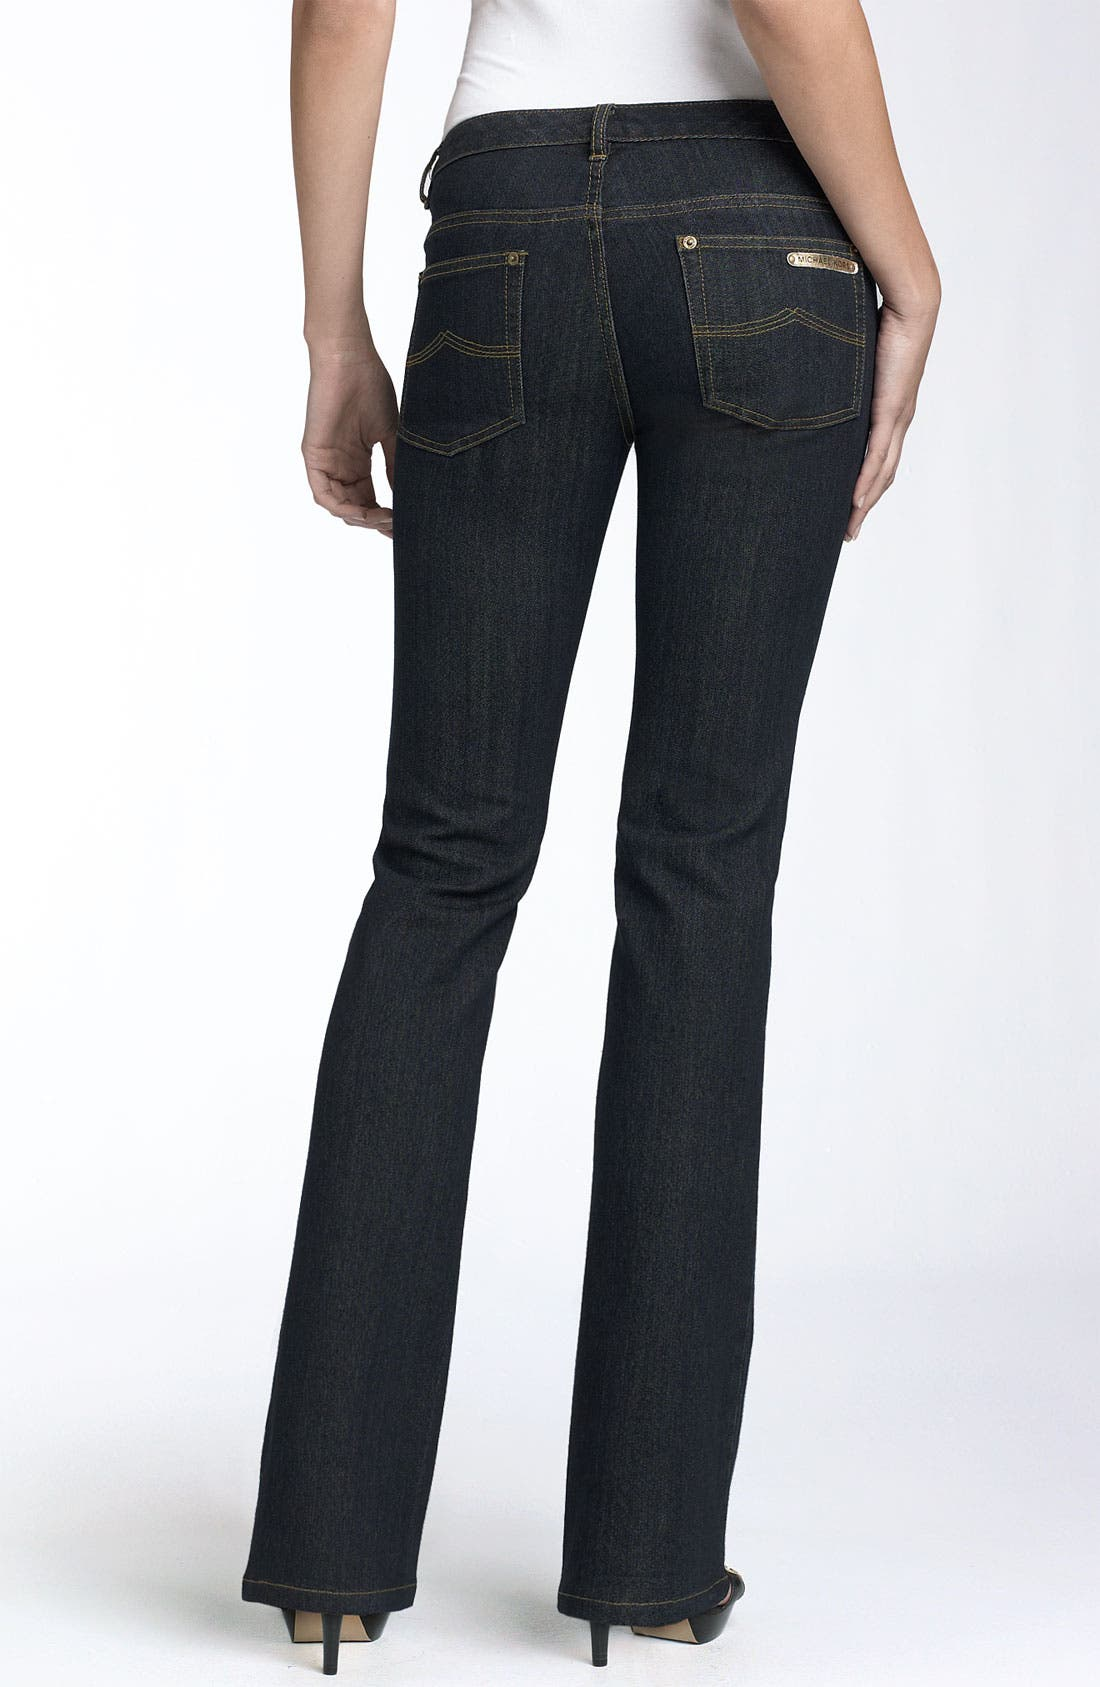 Alternate Image 2  - MICHAEL Michael Kors 'Sausalito' Stretch Demin Flare Jeans (Petite)